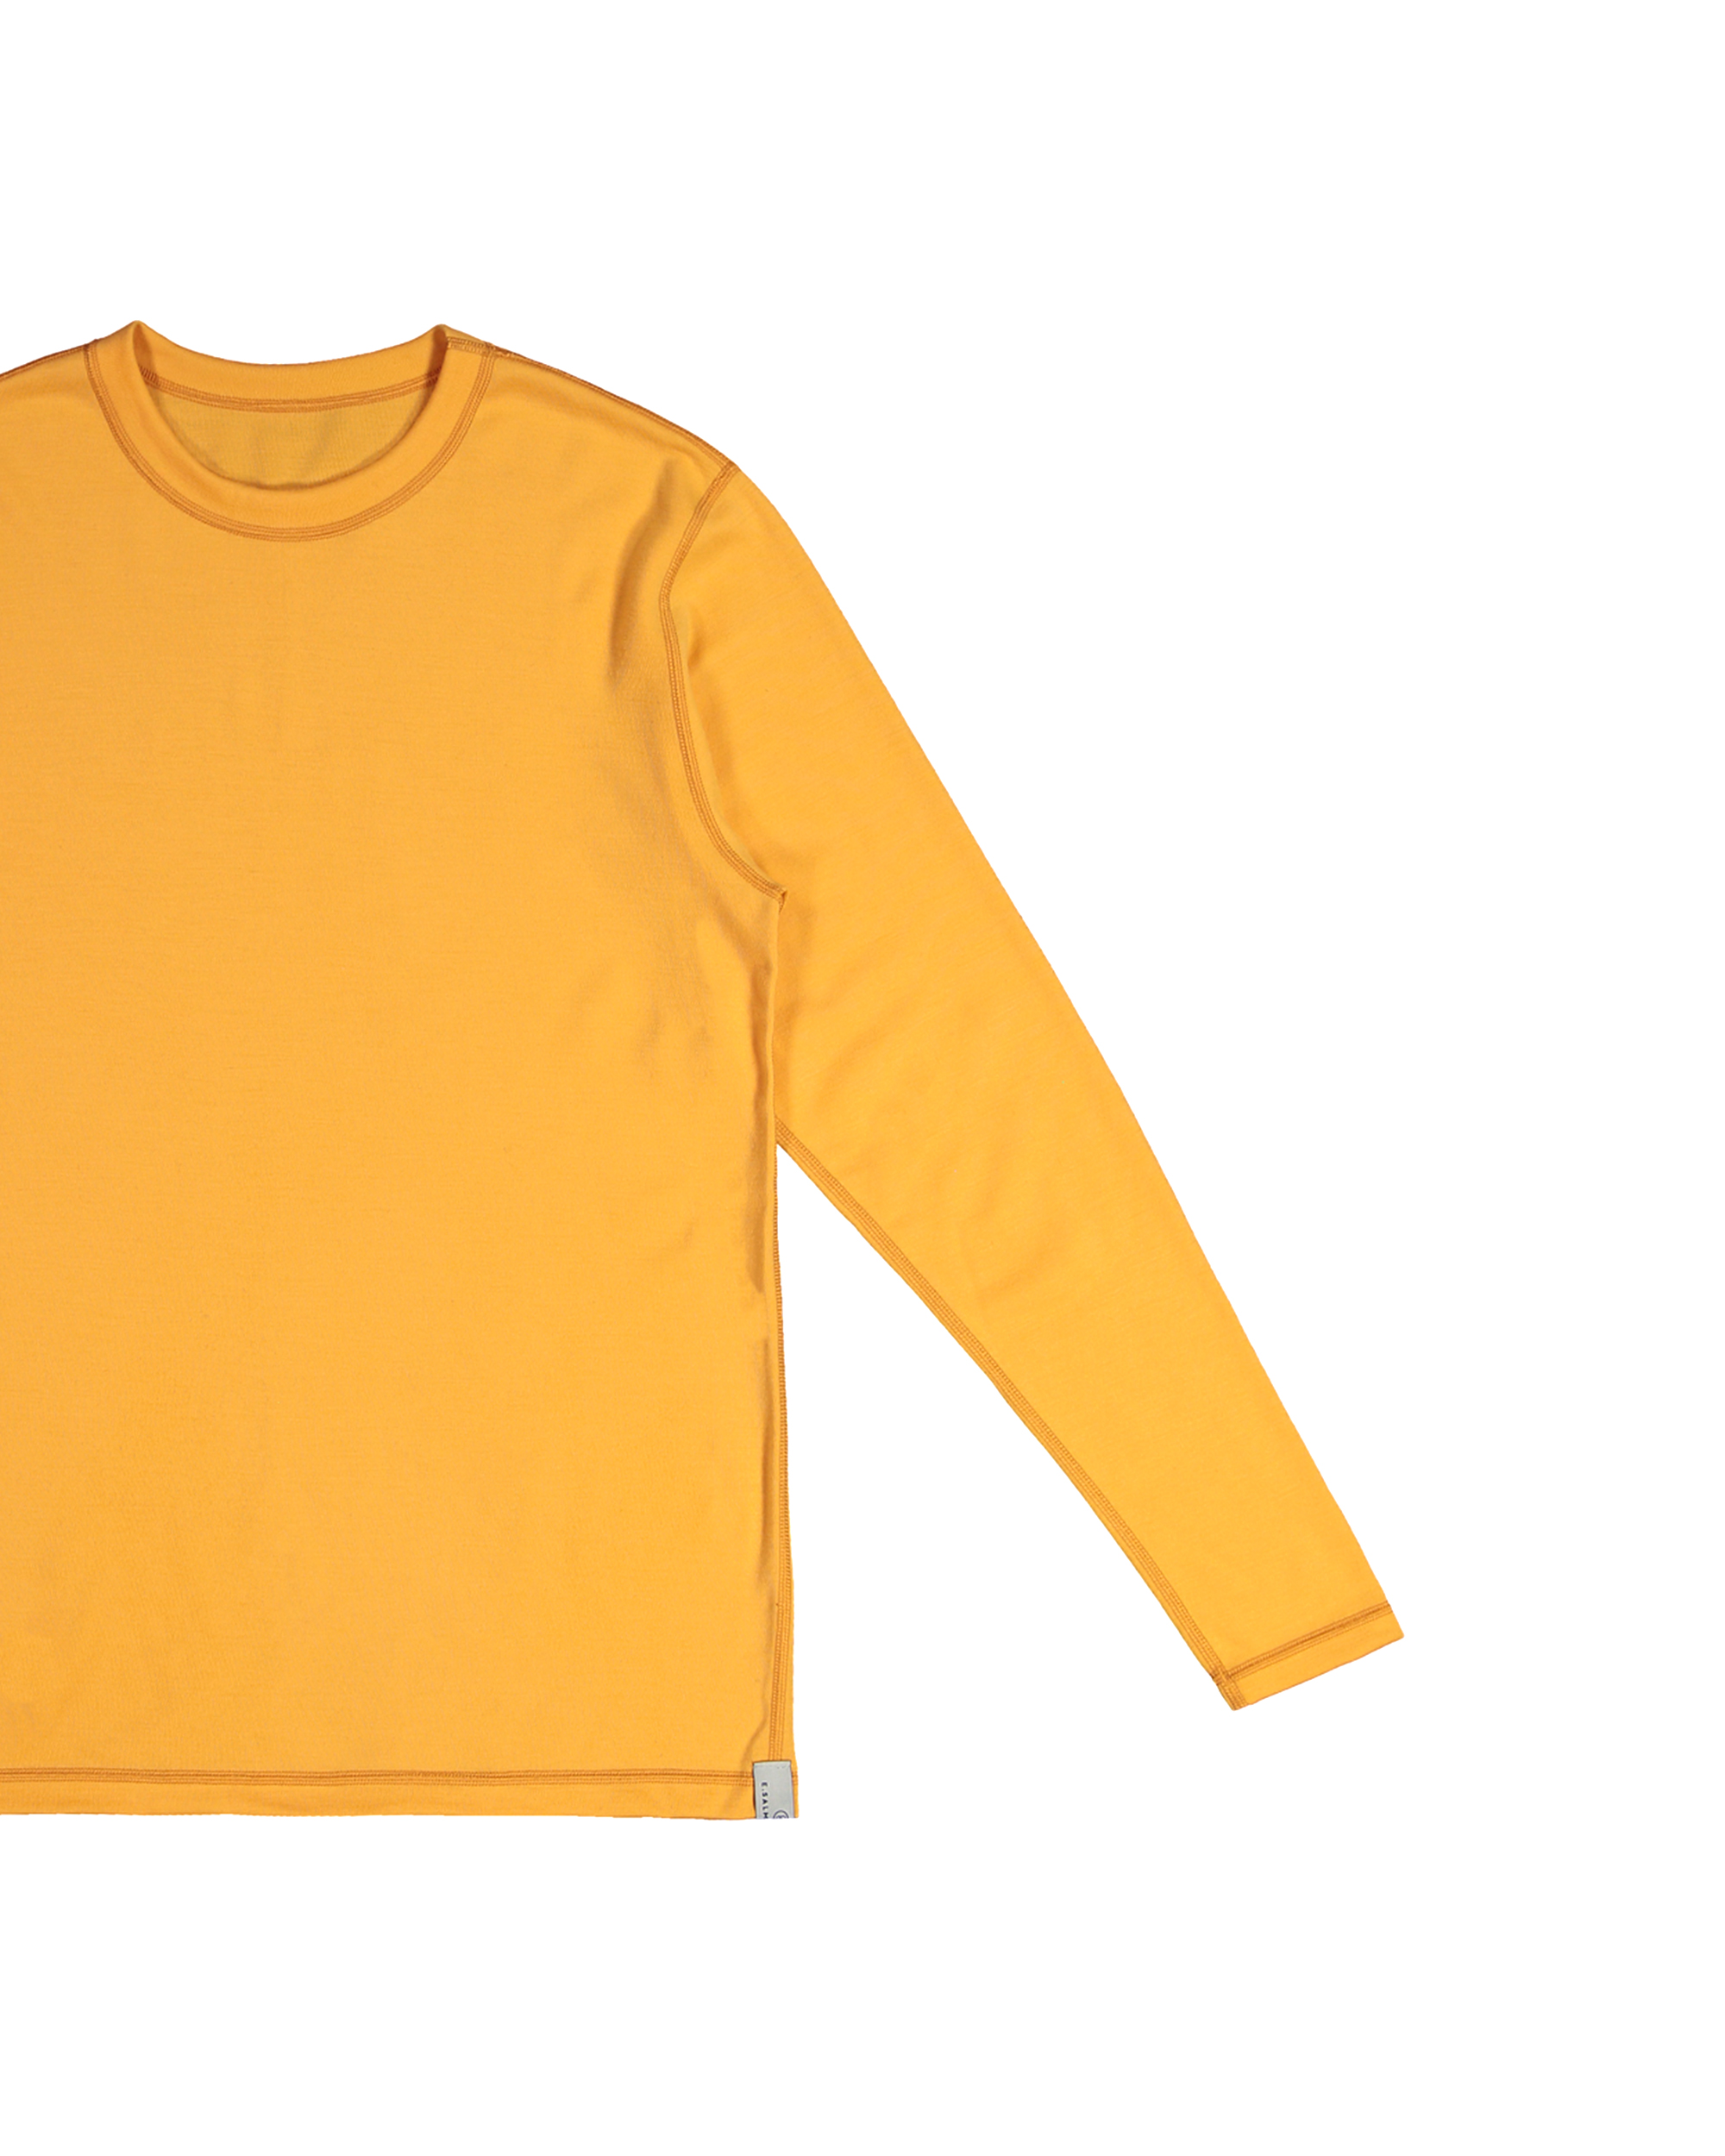 WOOL T-SHIRT (long sleeve)